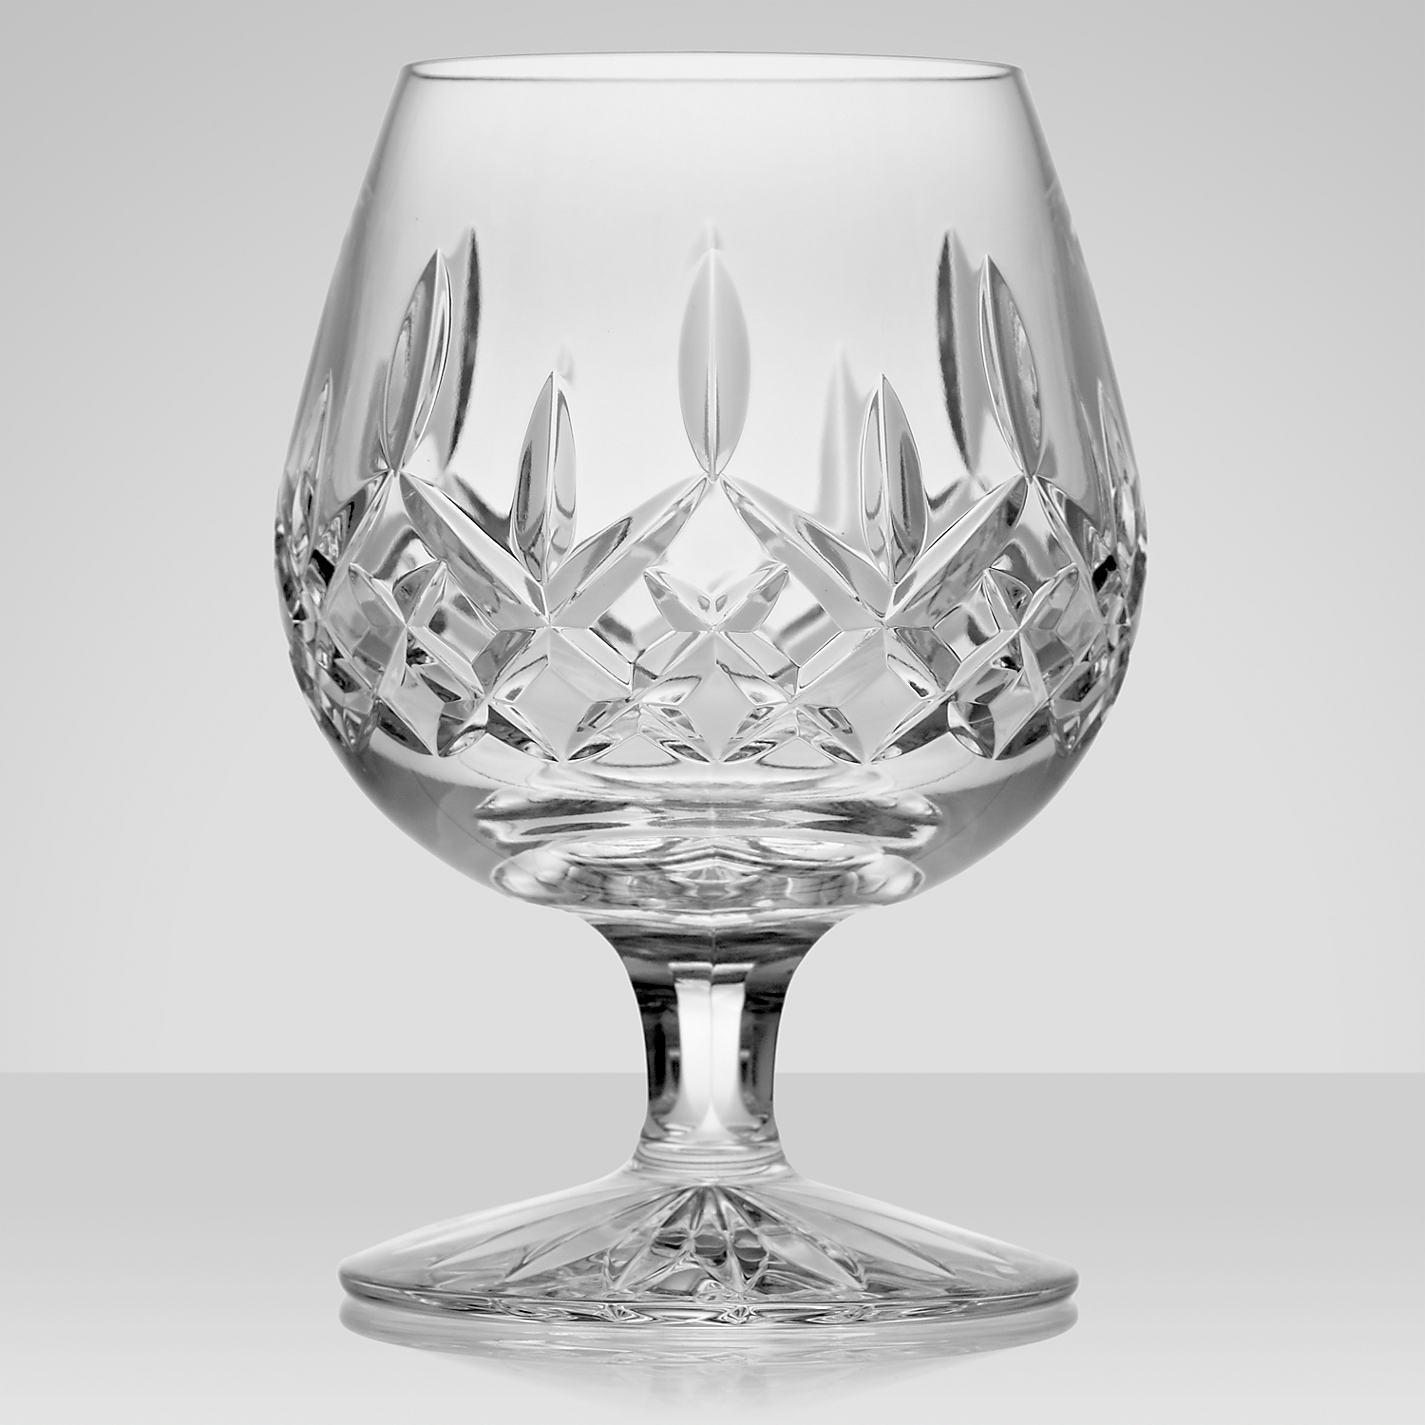 Fantastic Waterford Crystal Patterns for Dining Ware Ideas: Dazzling Waterford Crystal Patterns For Dining Sets Ideas With Waterford Crystal Glass Patterns